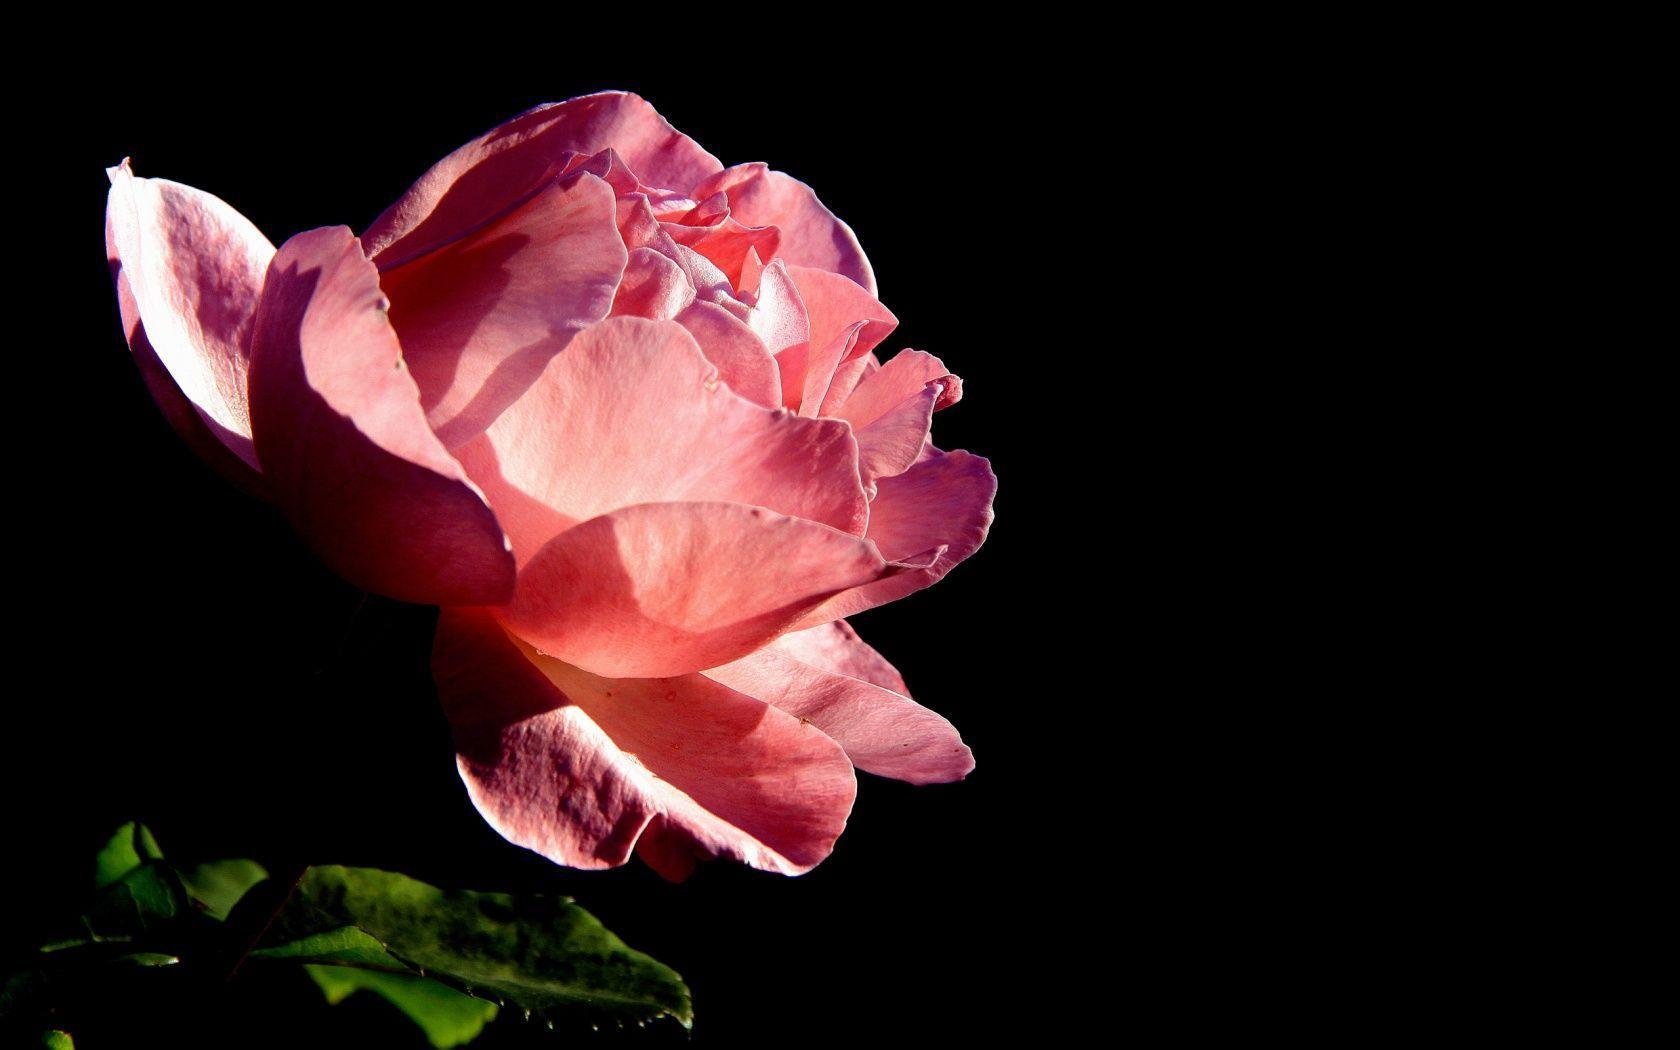 Black roses backgrounds wallpaper cave - Pink rose black background wallpaper ...